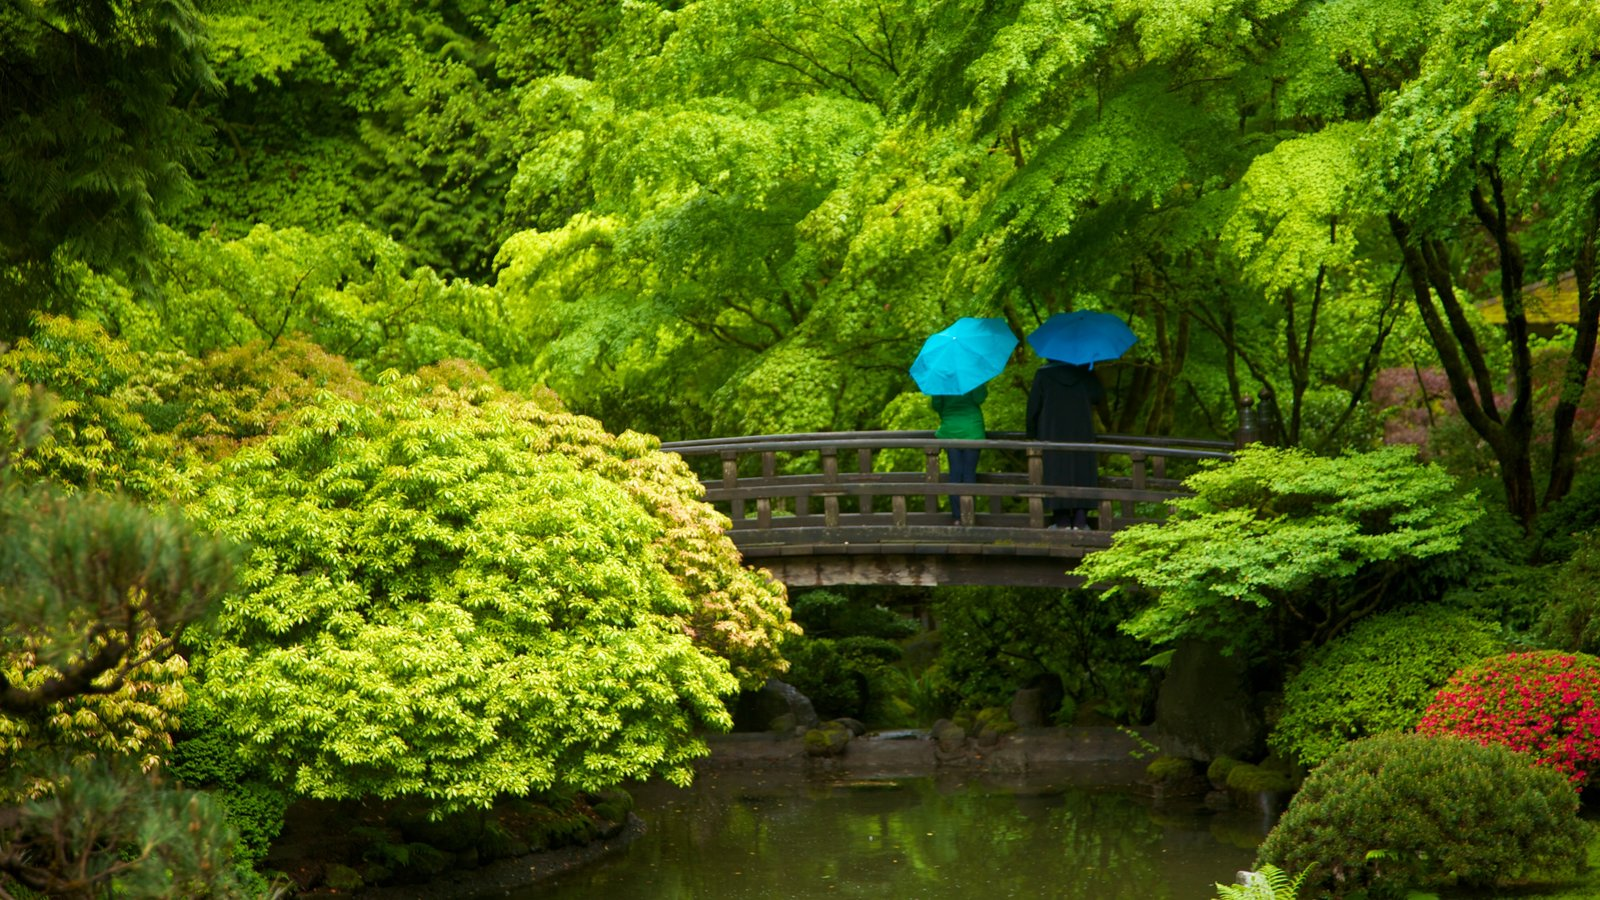 Portland Japanese Garden showing forest scenes, a bridge and a garden